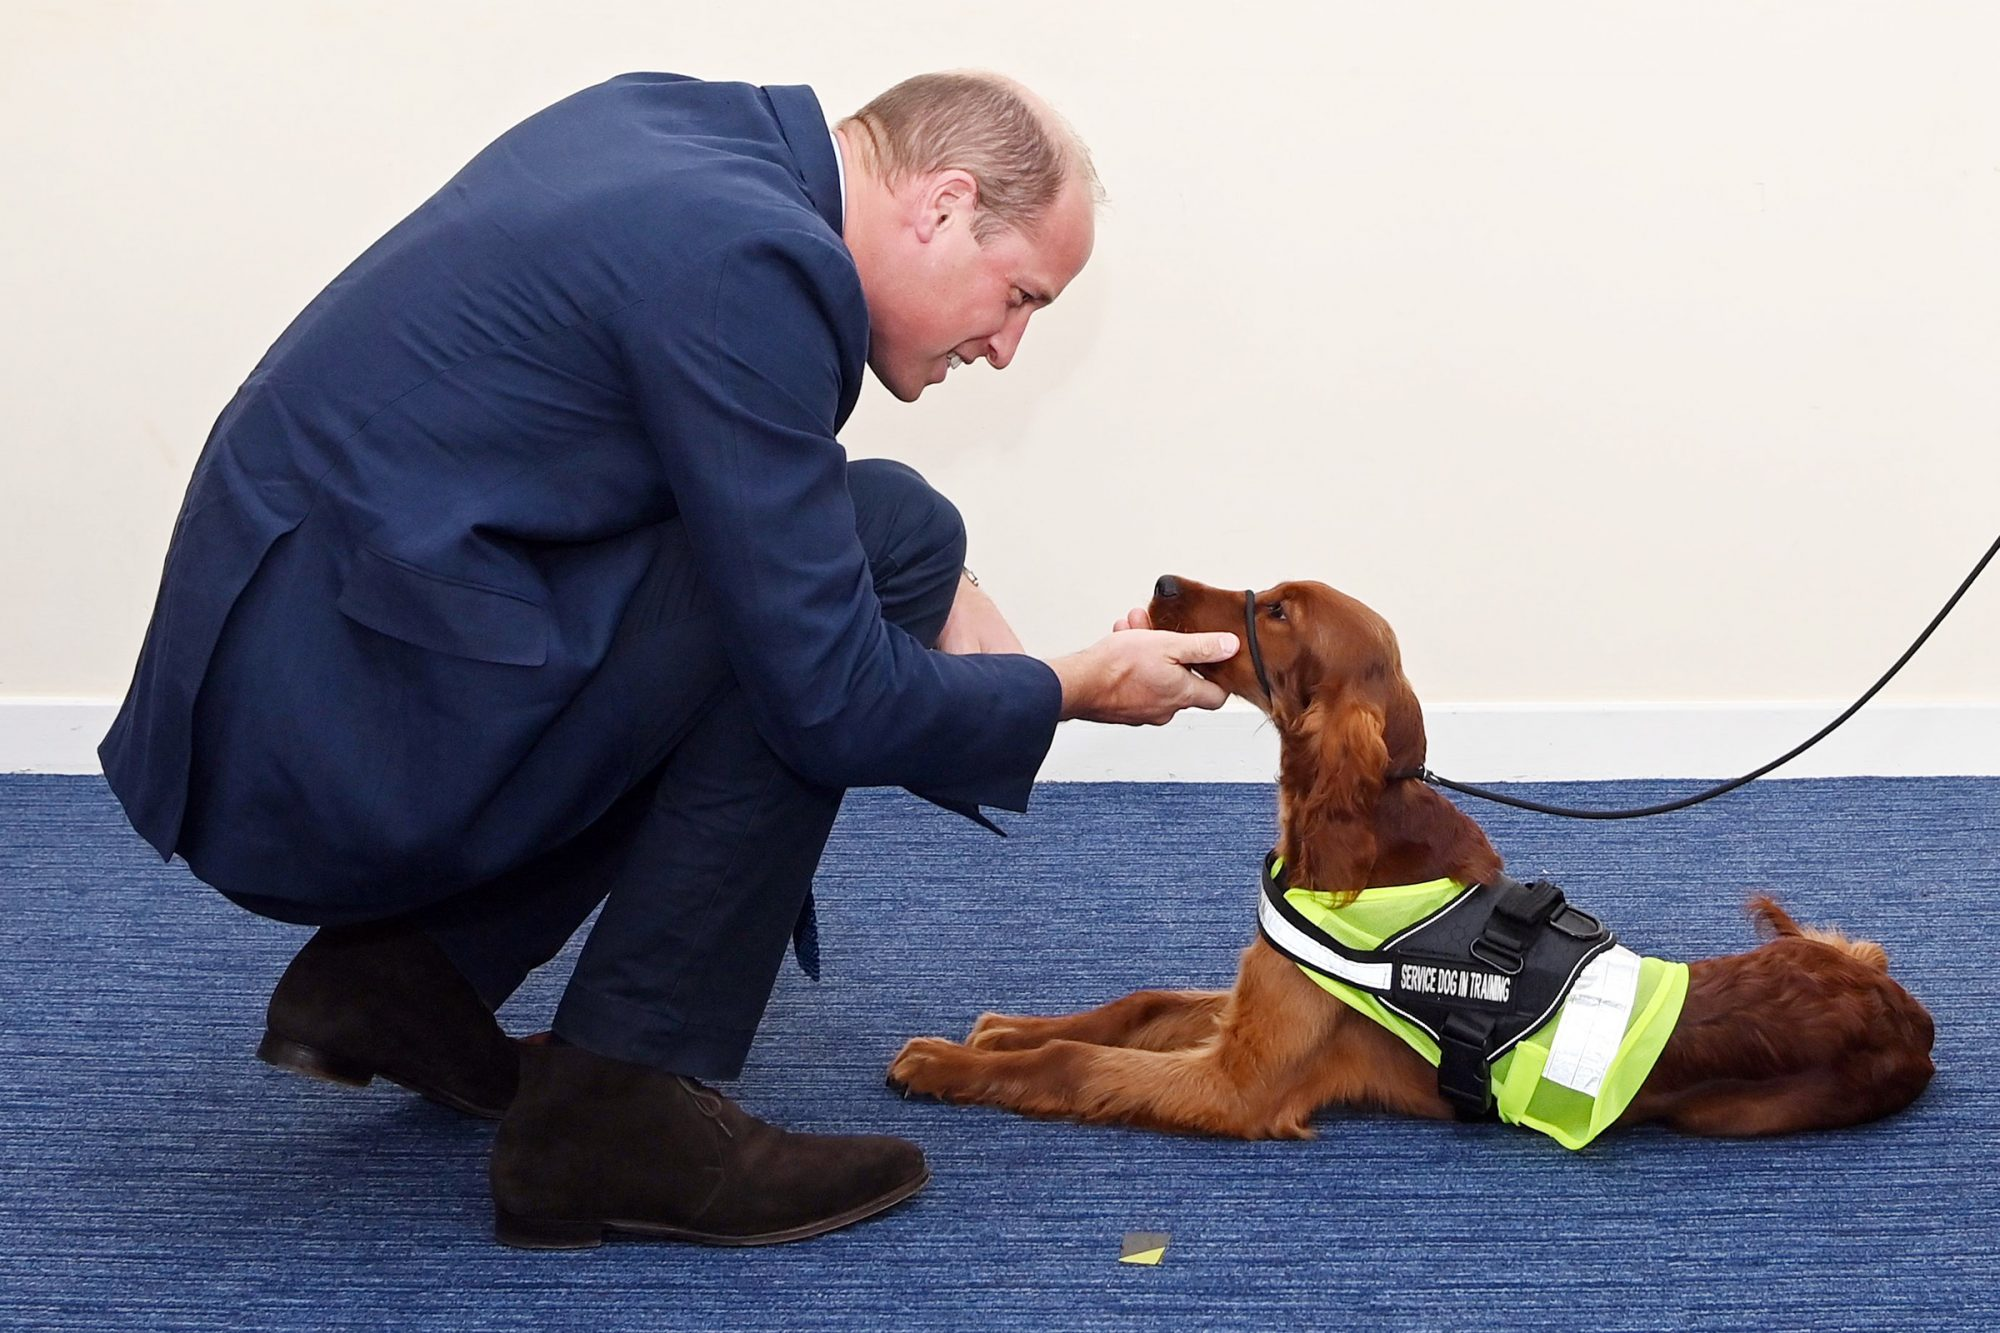 Prince William meets Tara, a 5 month old Irish Red Setter, trained as a PTSD training dog. Prince William visit to PSNI Garnerville, Belfast, Northern Ireland, UK - 09 Sep 2020